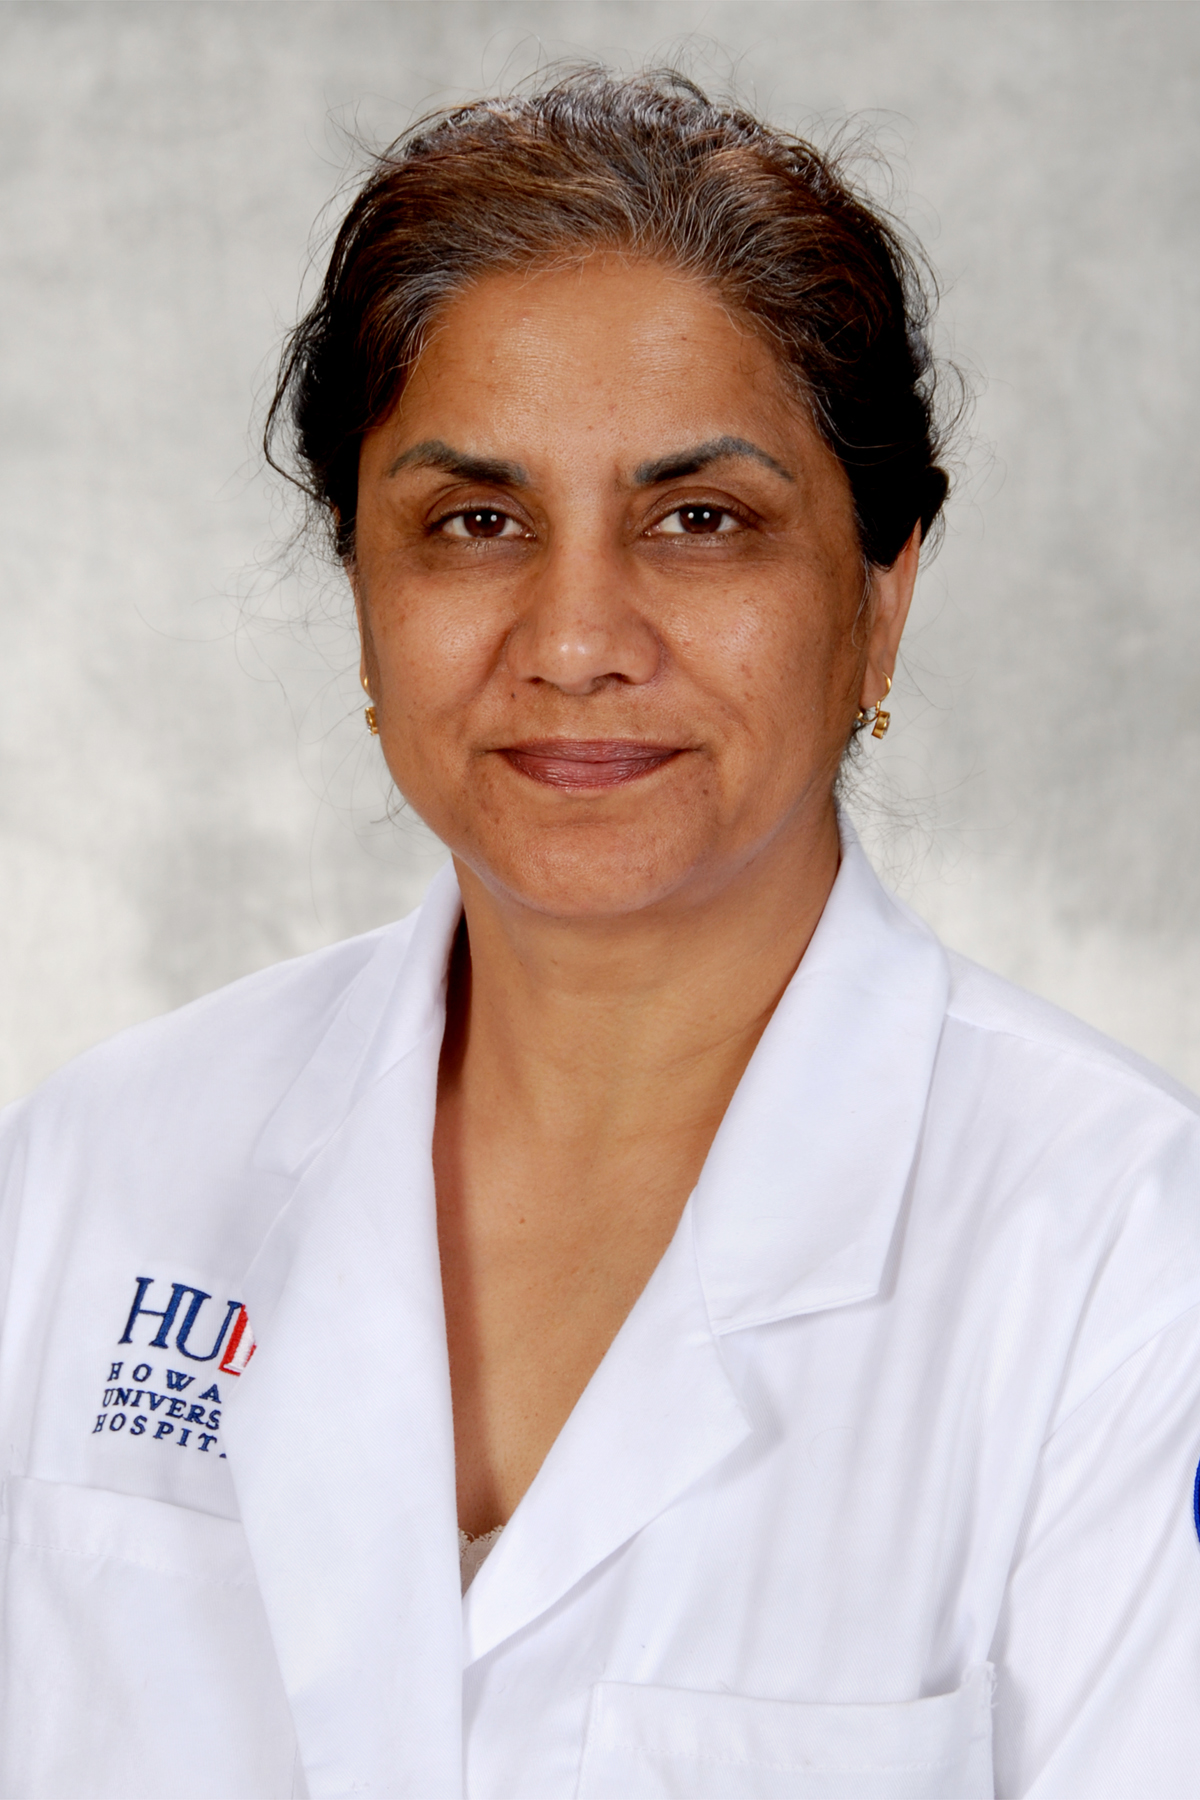 Arrival of New Cancer Physician | Howard University College of Medicine